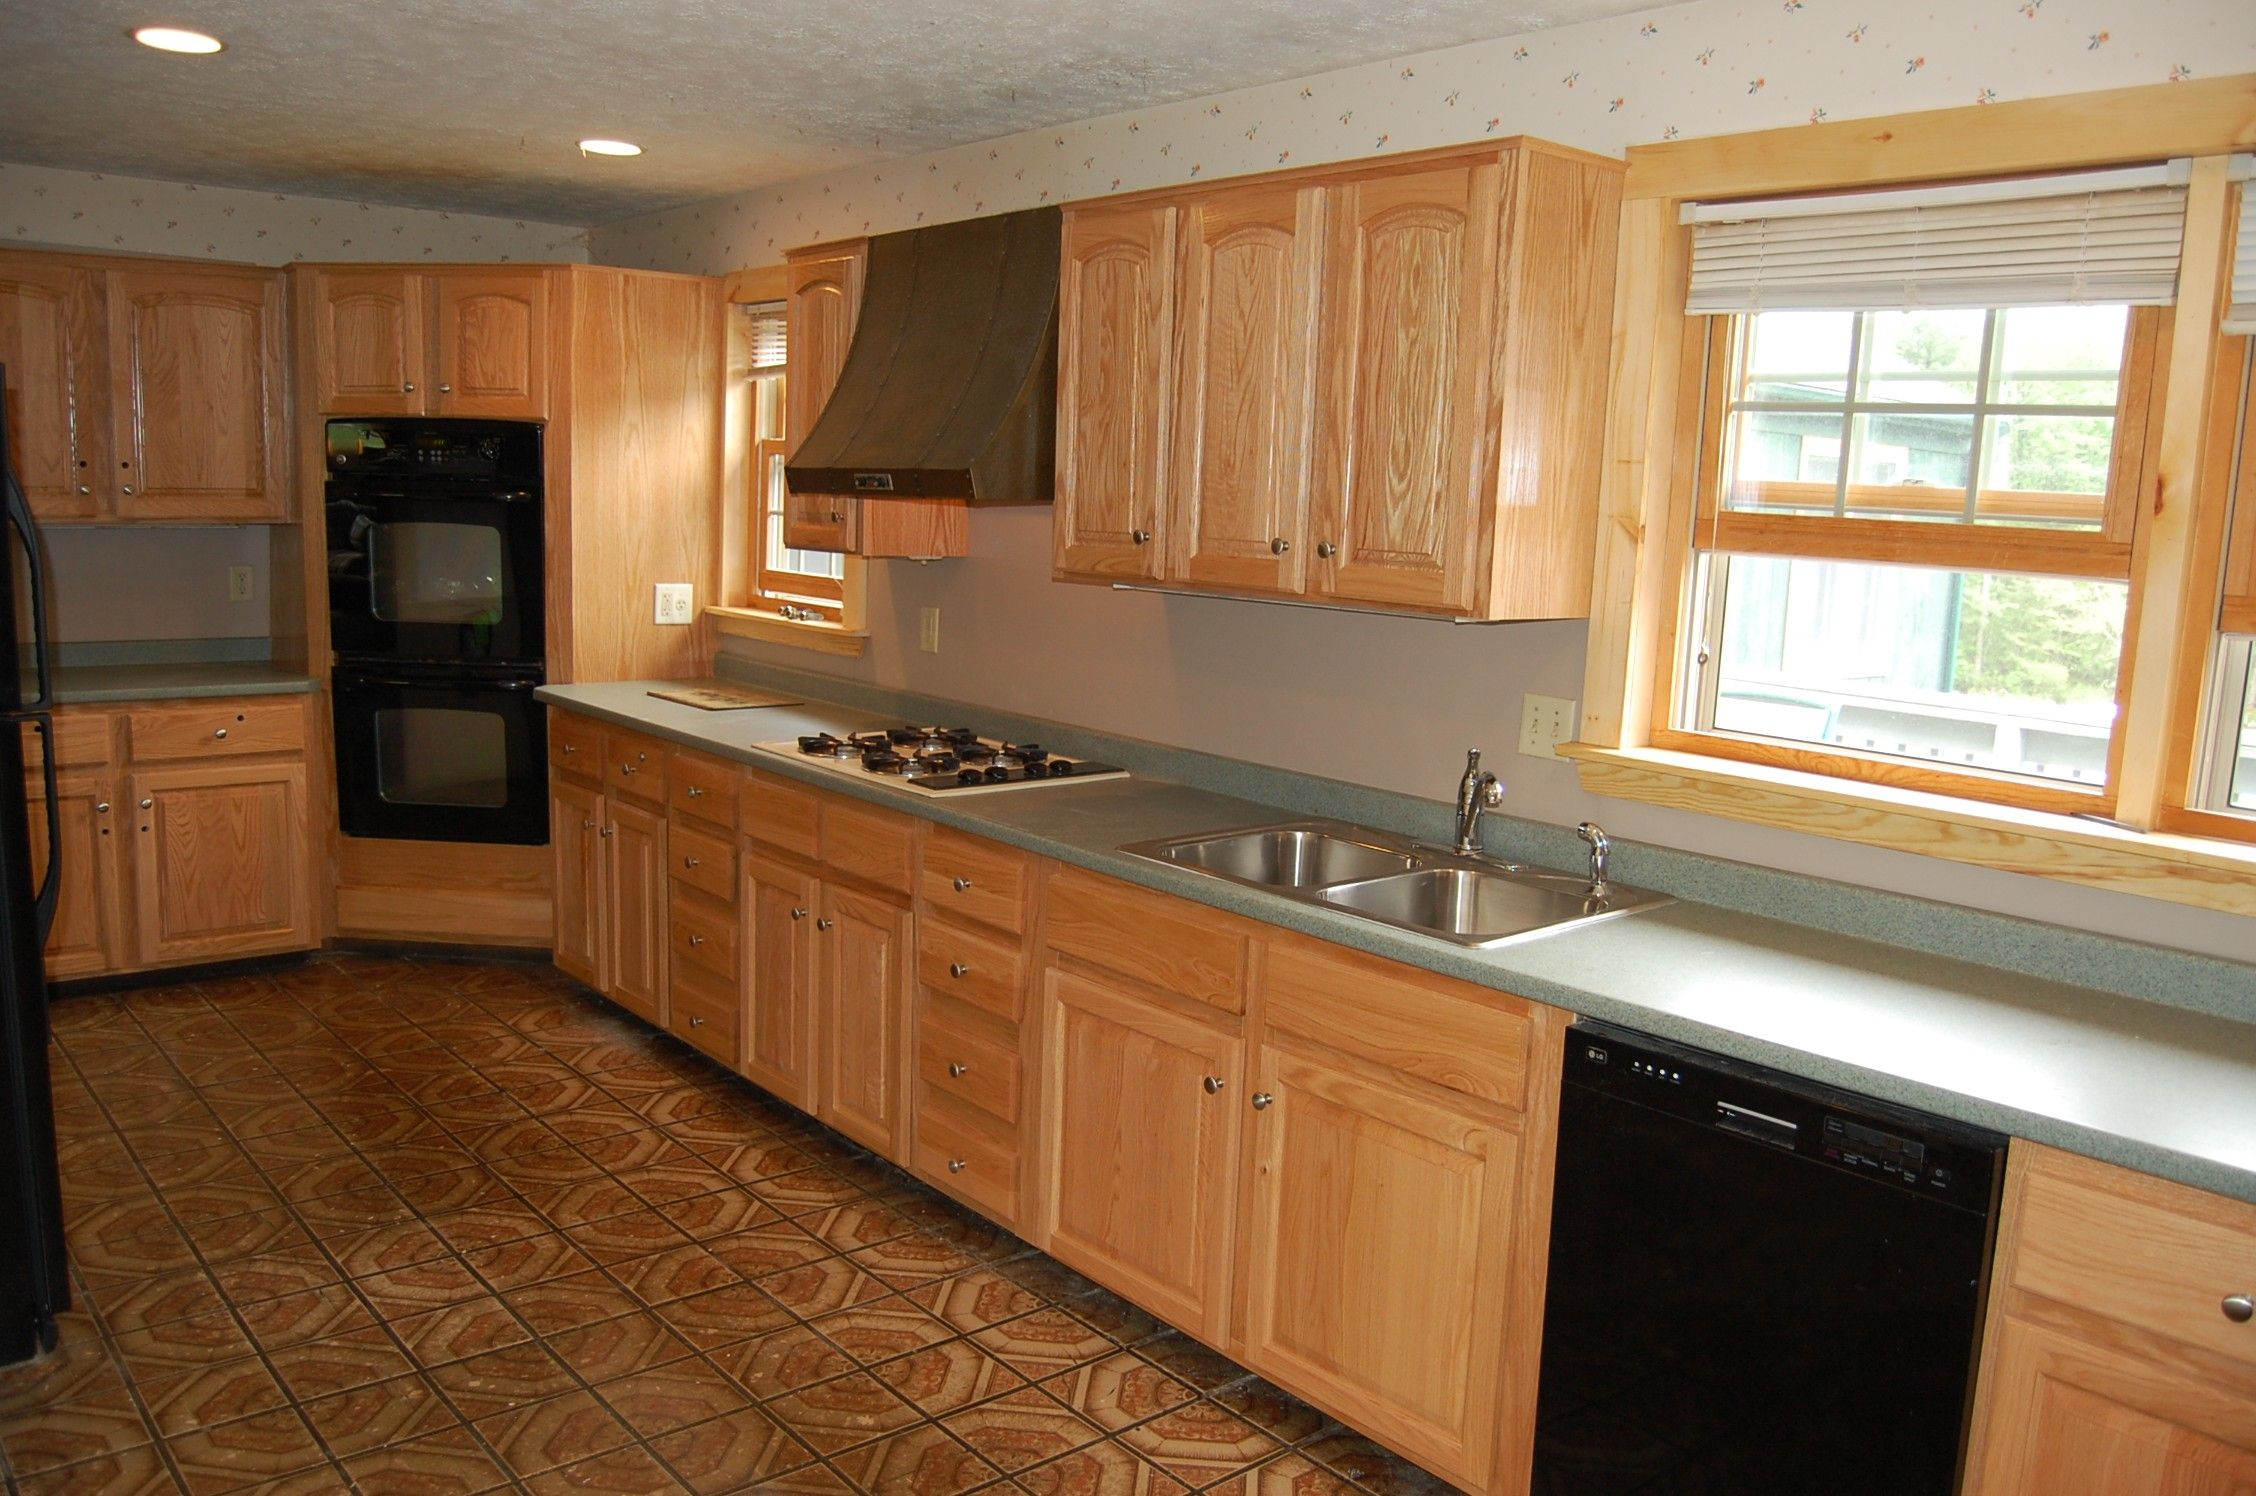 Best Way to Paint Kitchen Cabinets: A Step by Step Guide # ...